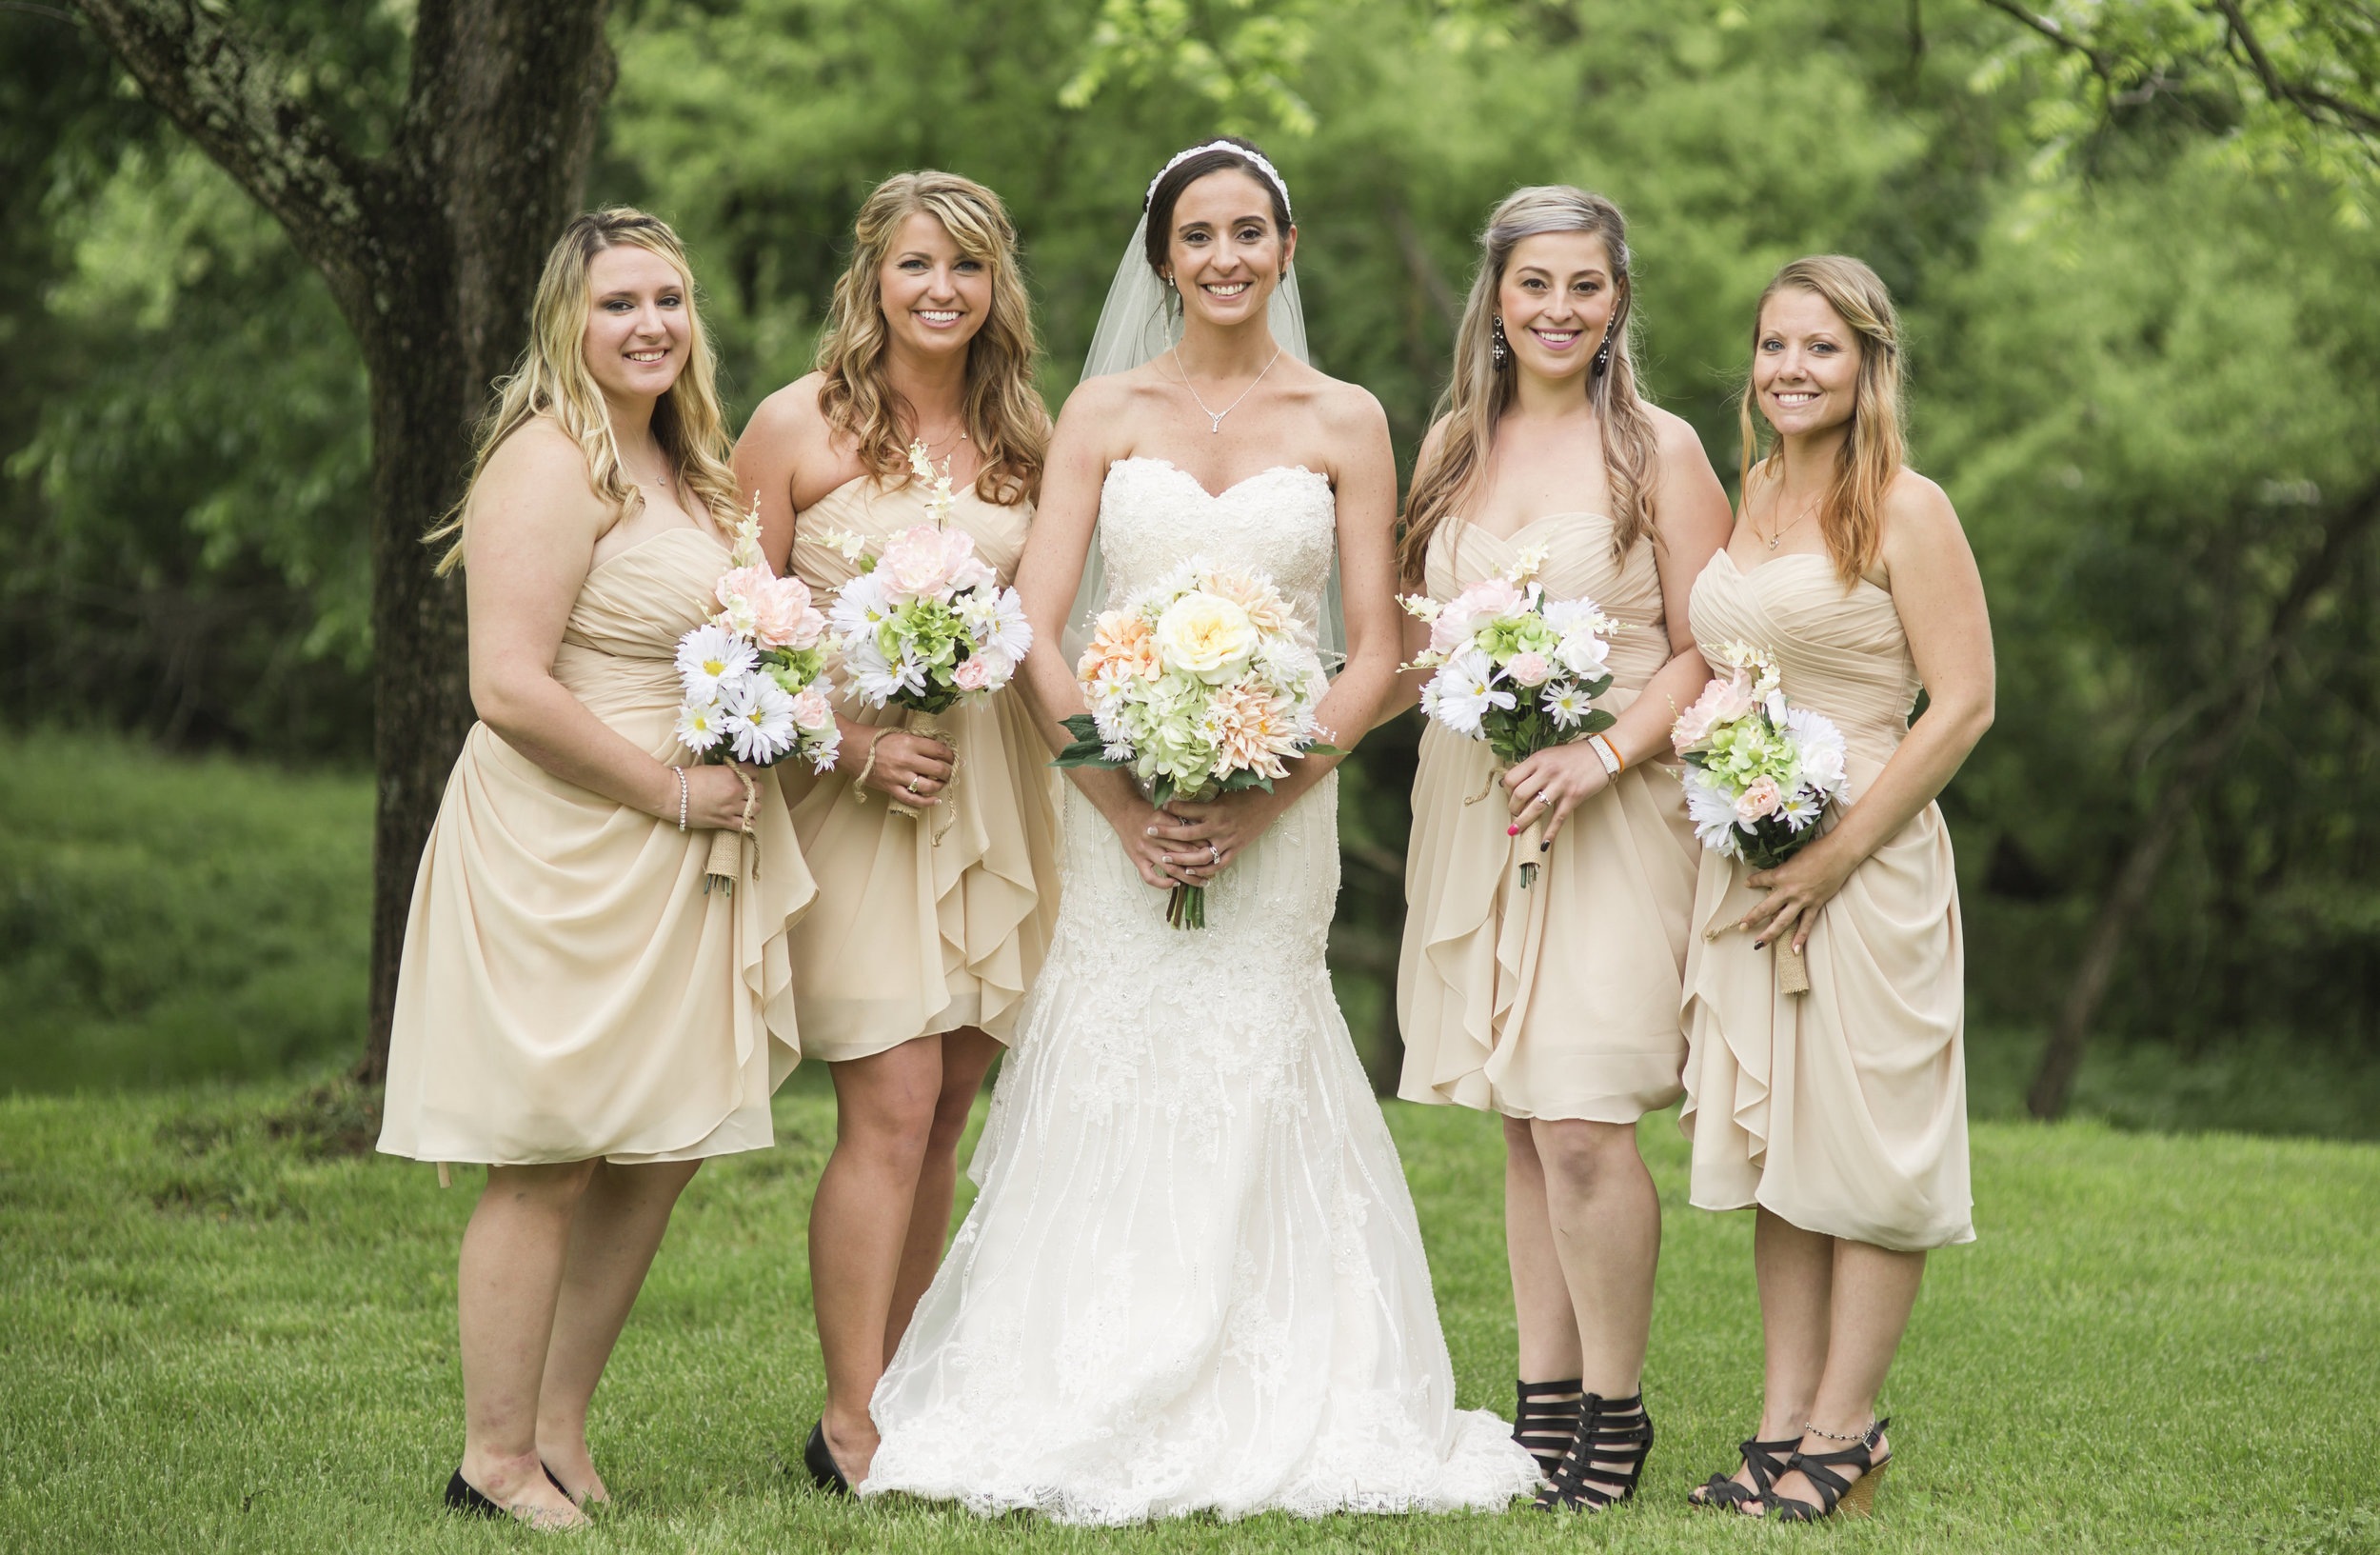 rebeccawed-Group pictures-0116.jpg